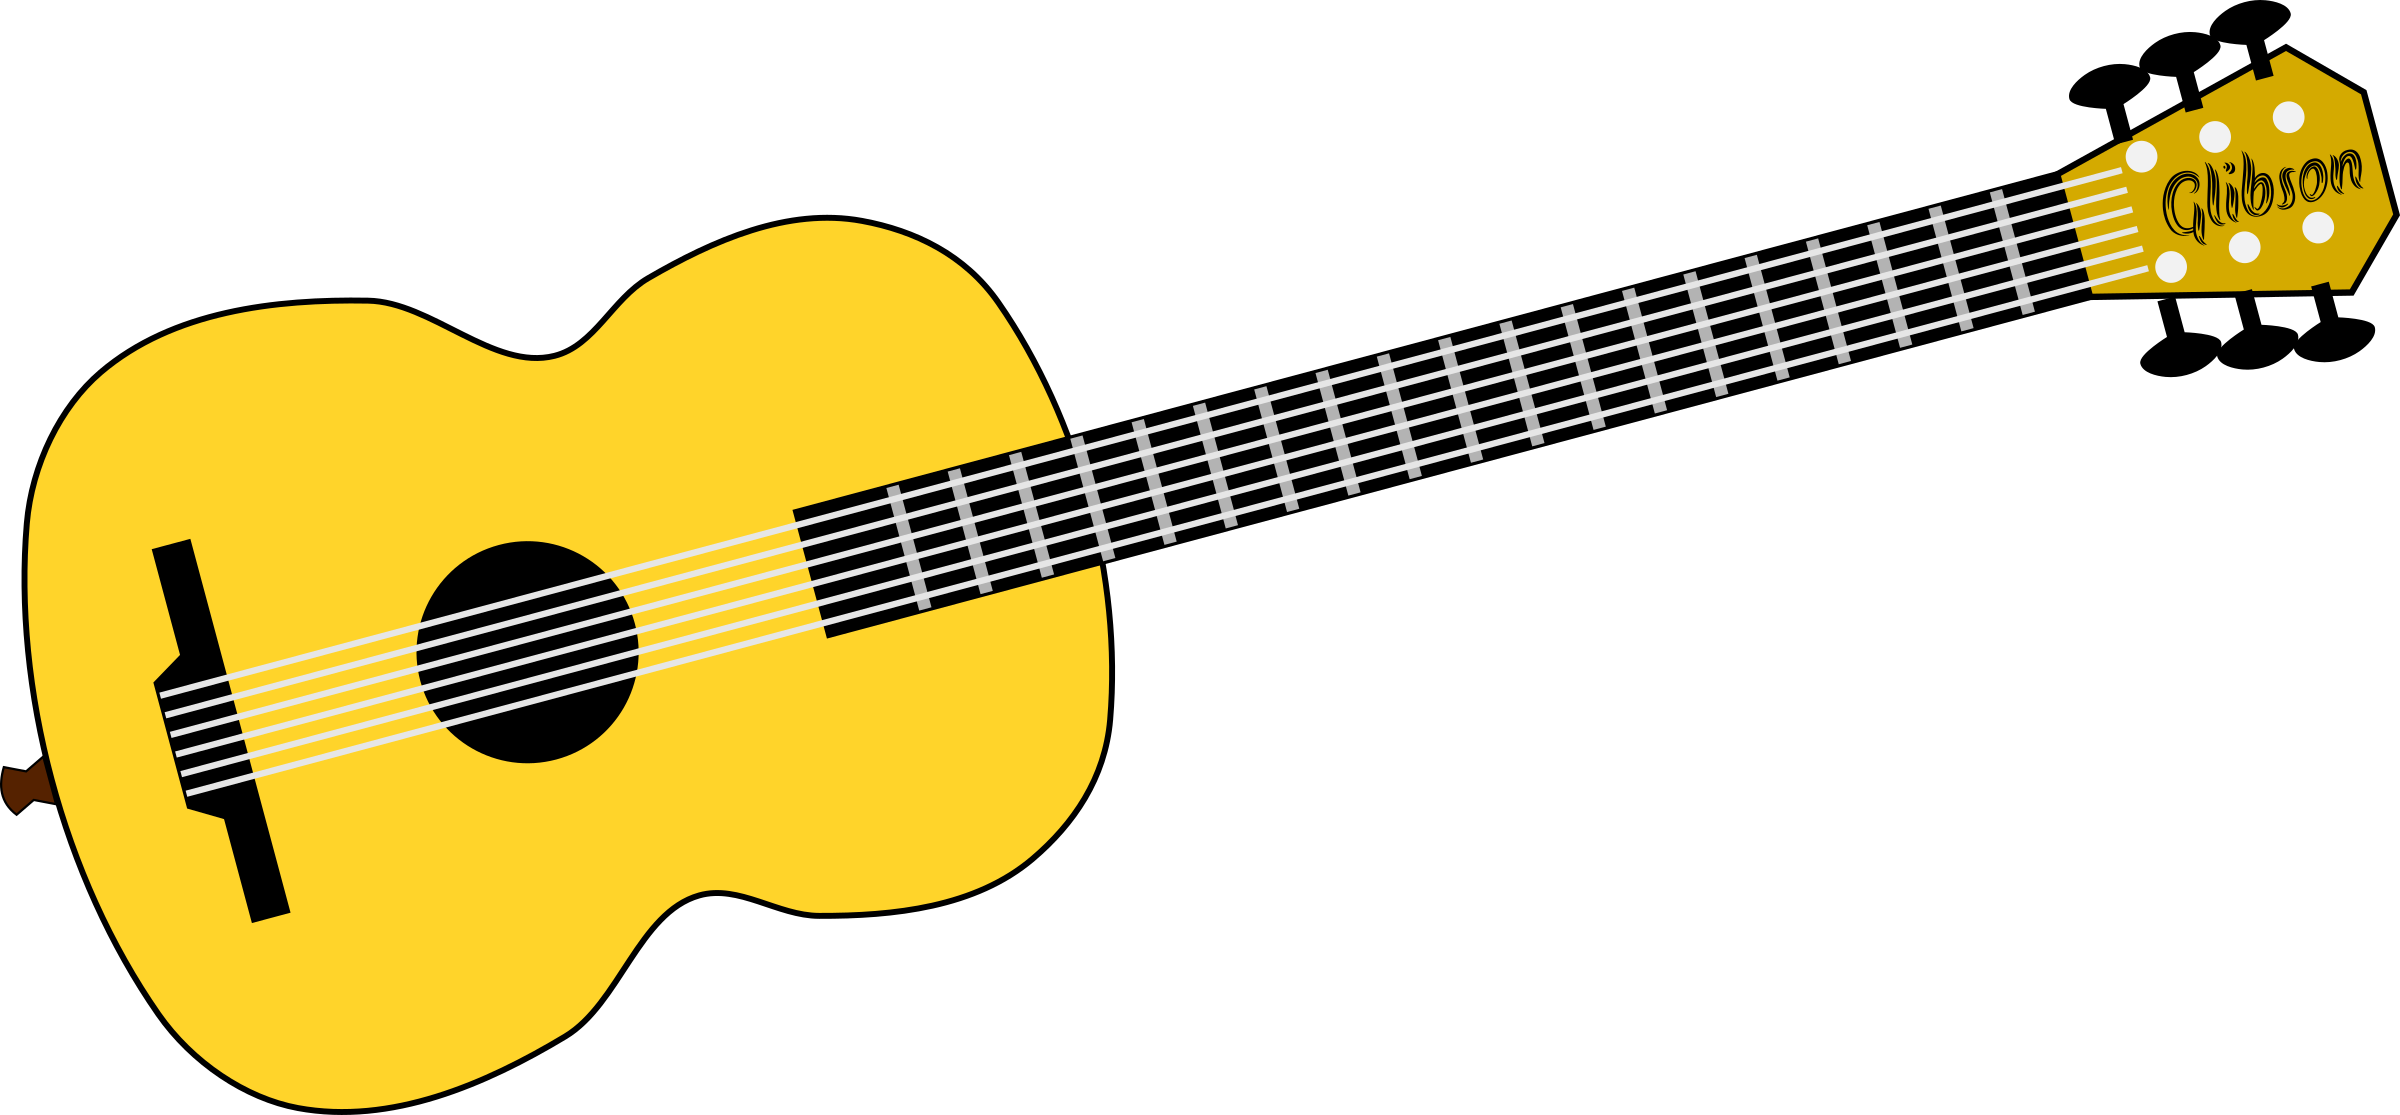 svg free Guarantee free on dumielauxepices. Acoustic clipart guitar string.